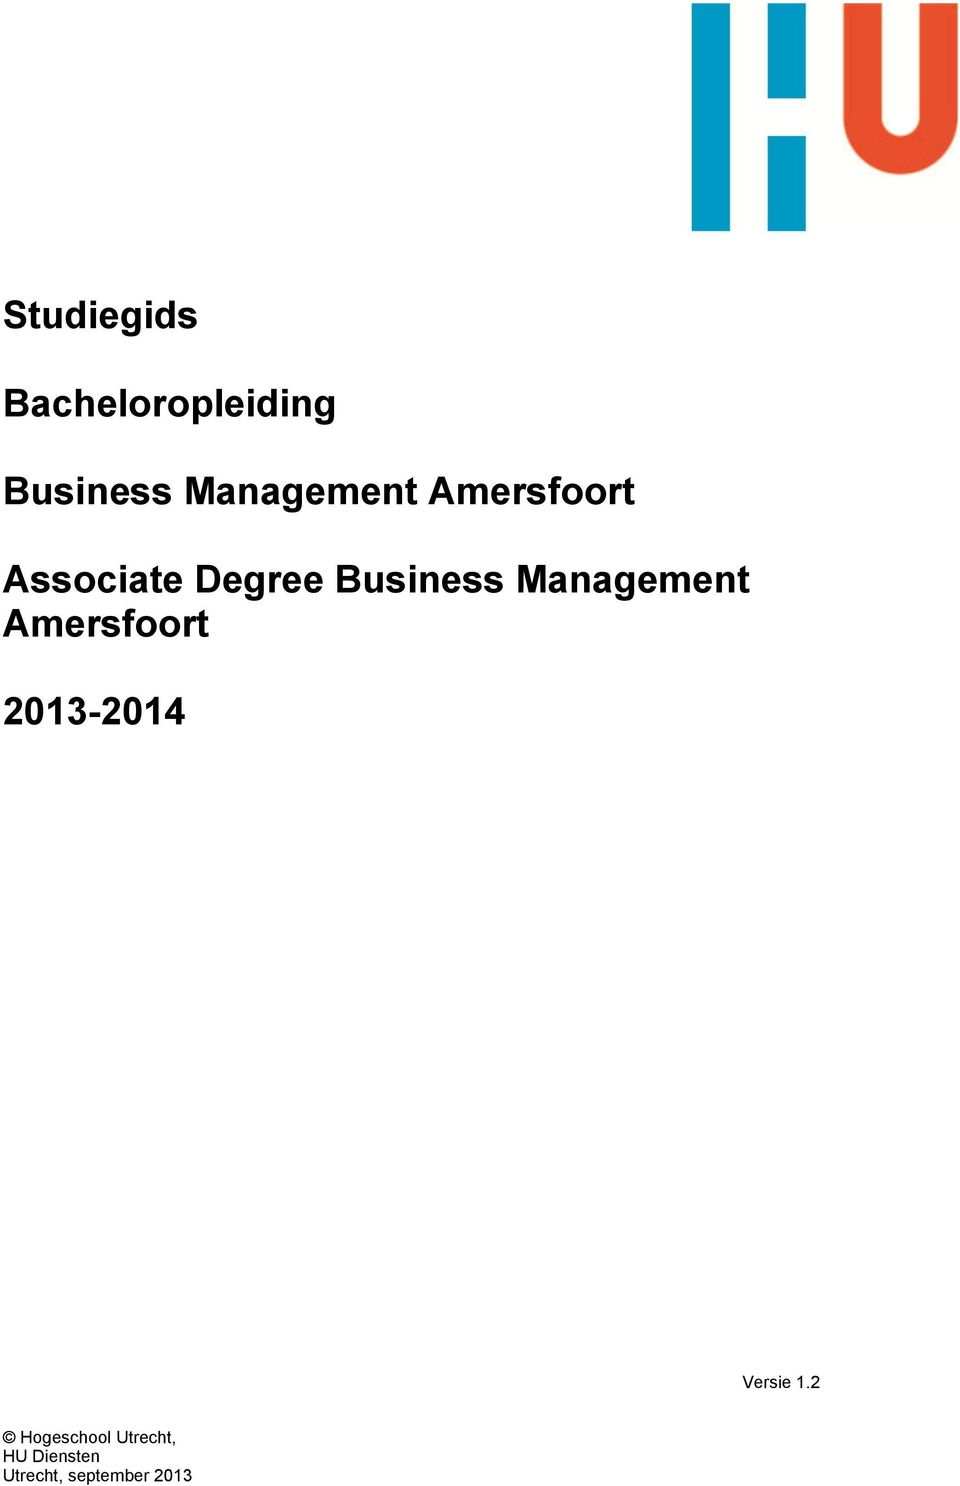 Business Management Amersfoort 2013-2014